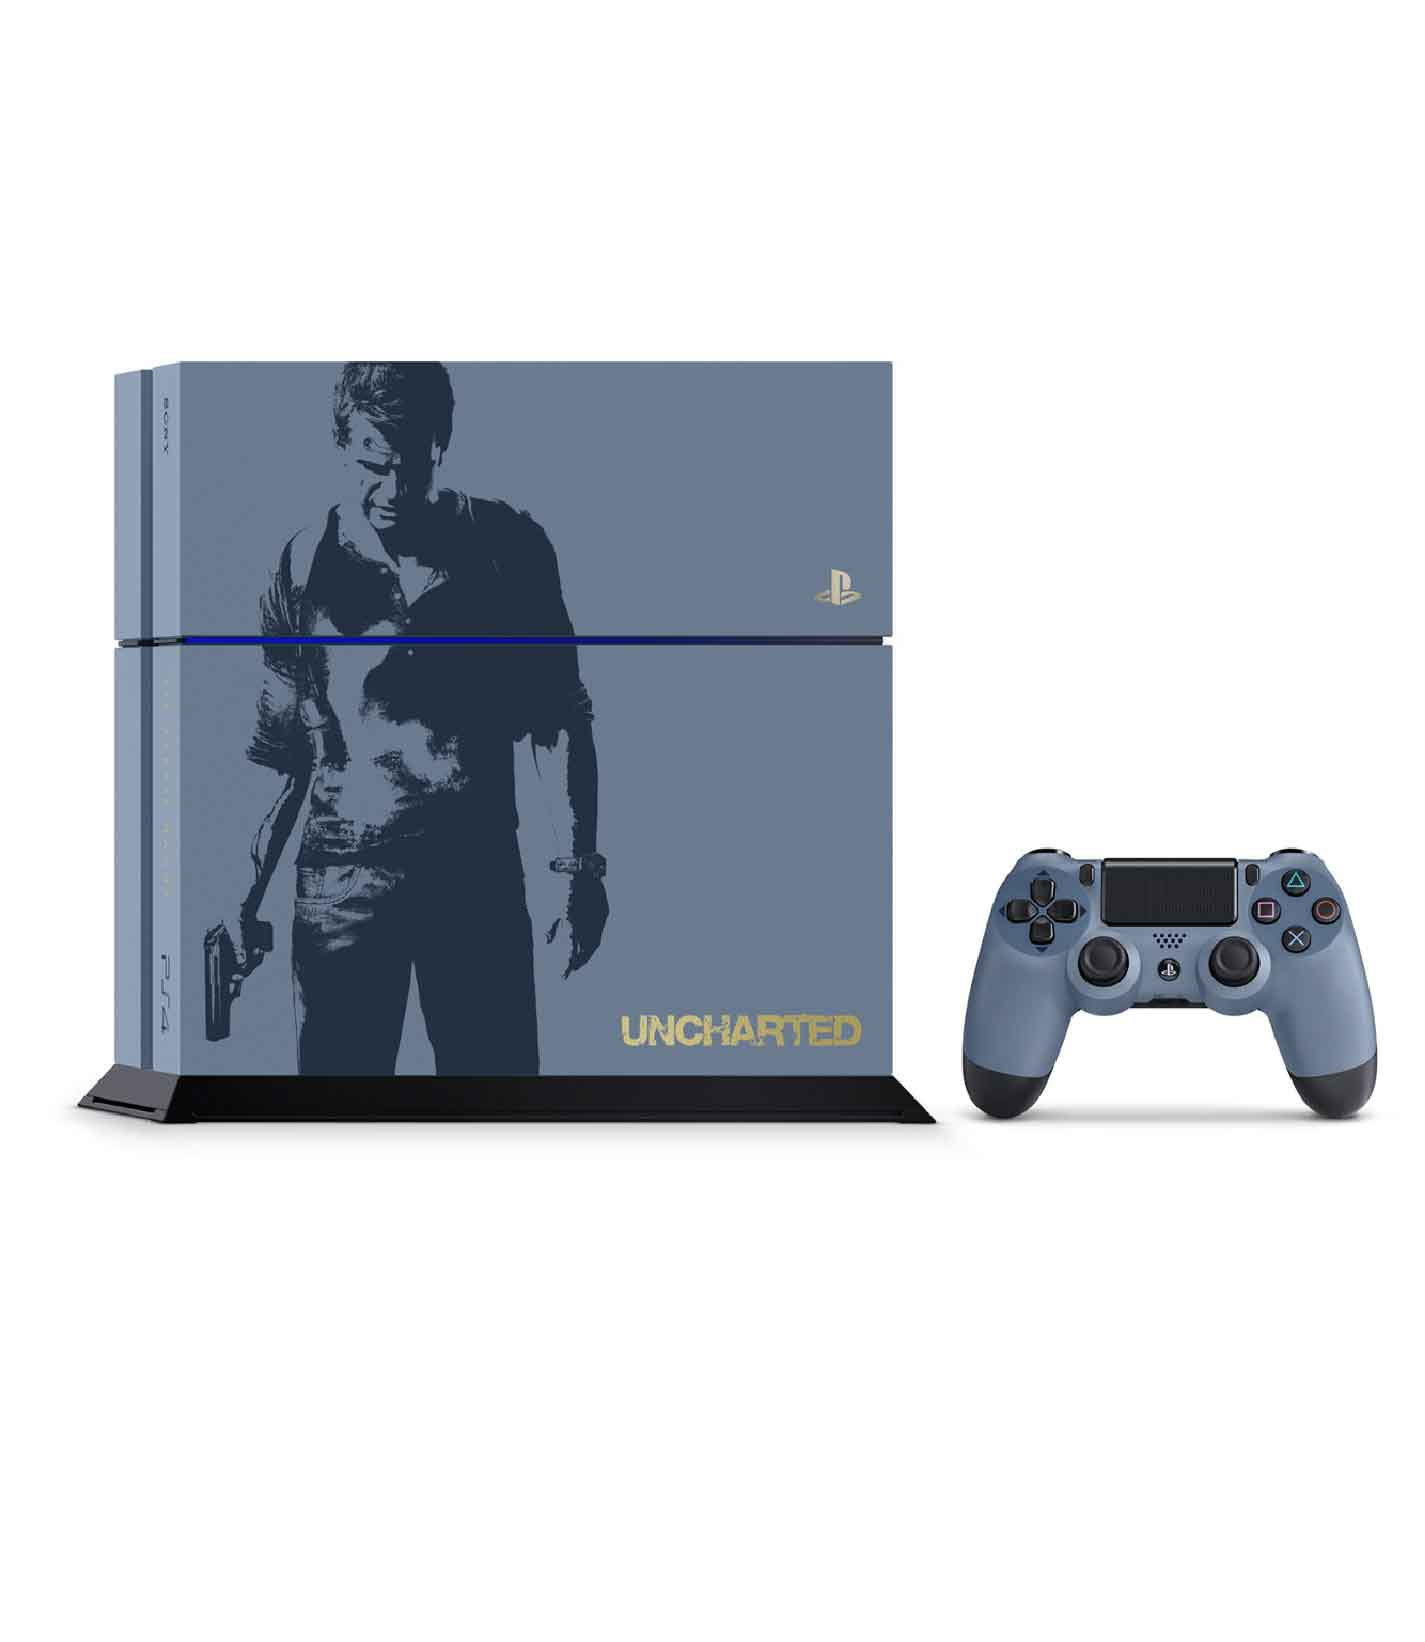 RetroPixl Sony Playstation 4 (PS4) Uncharted Limited Edition